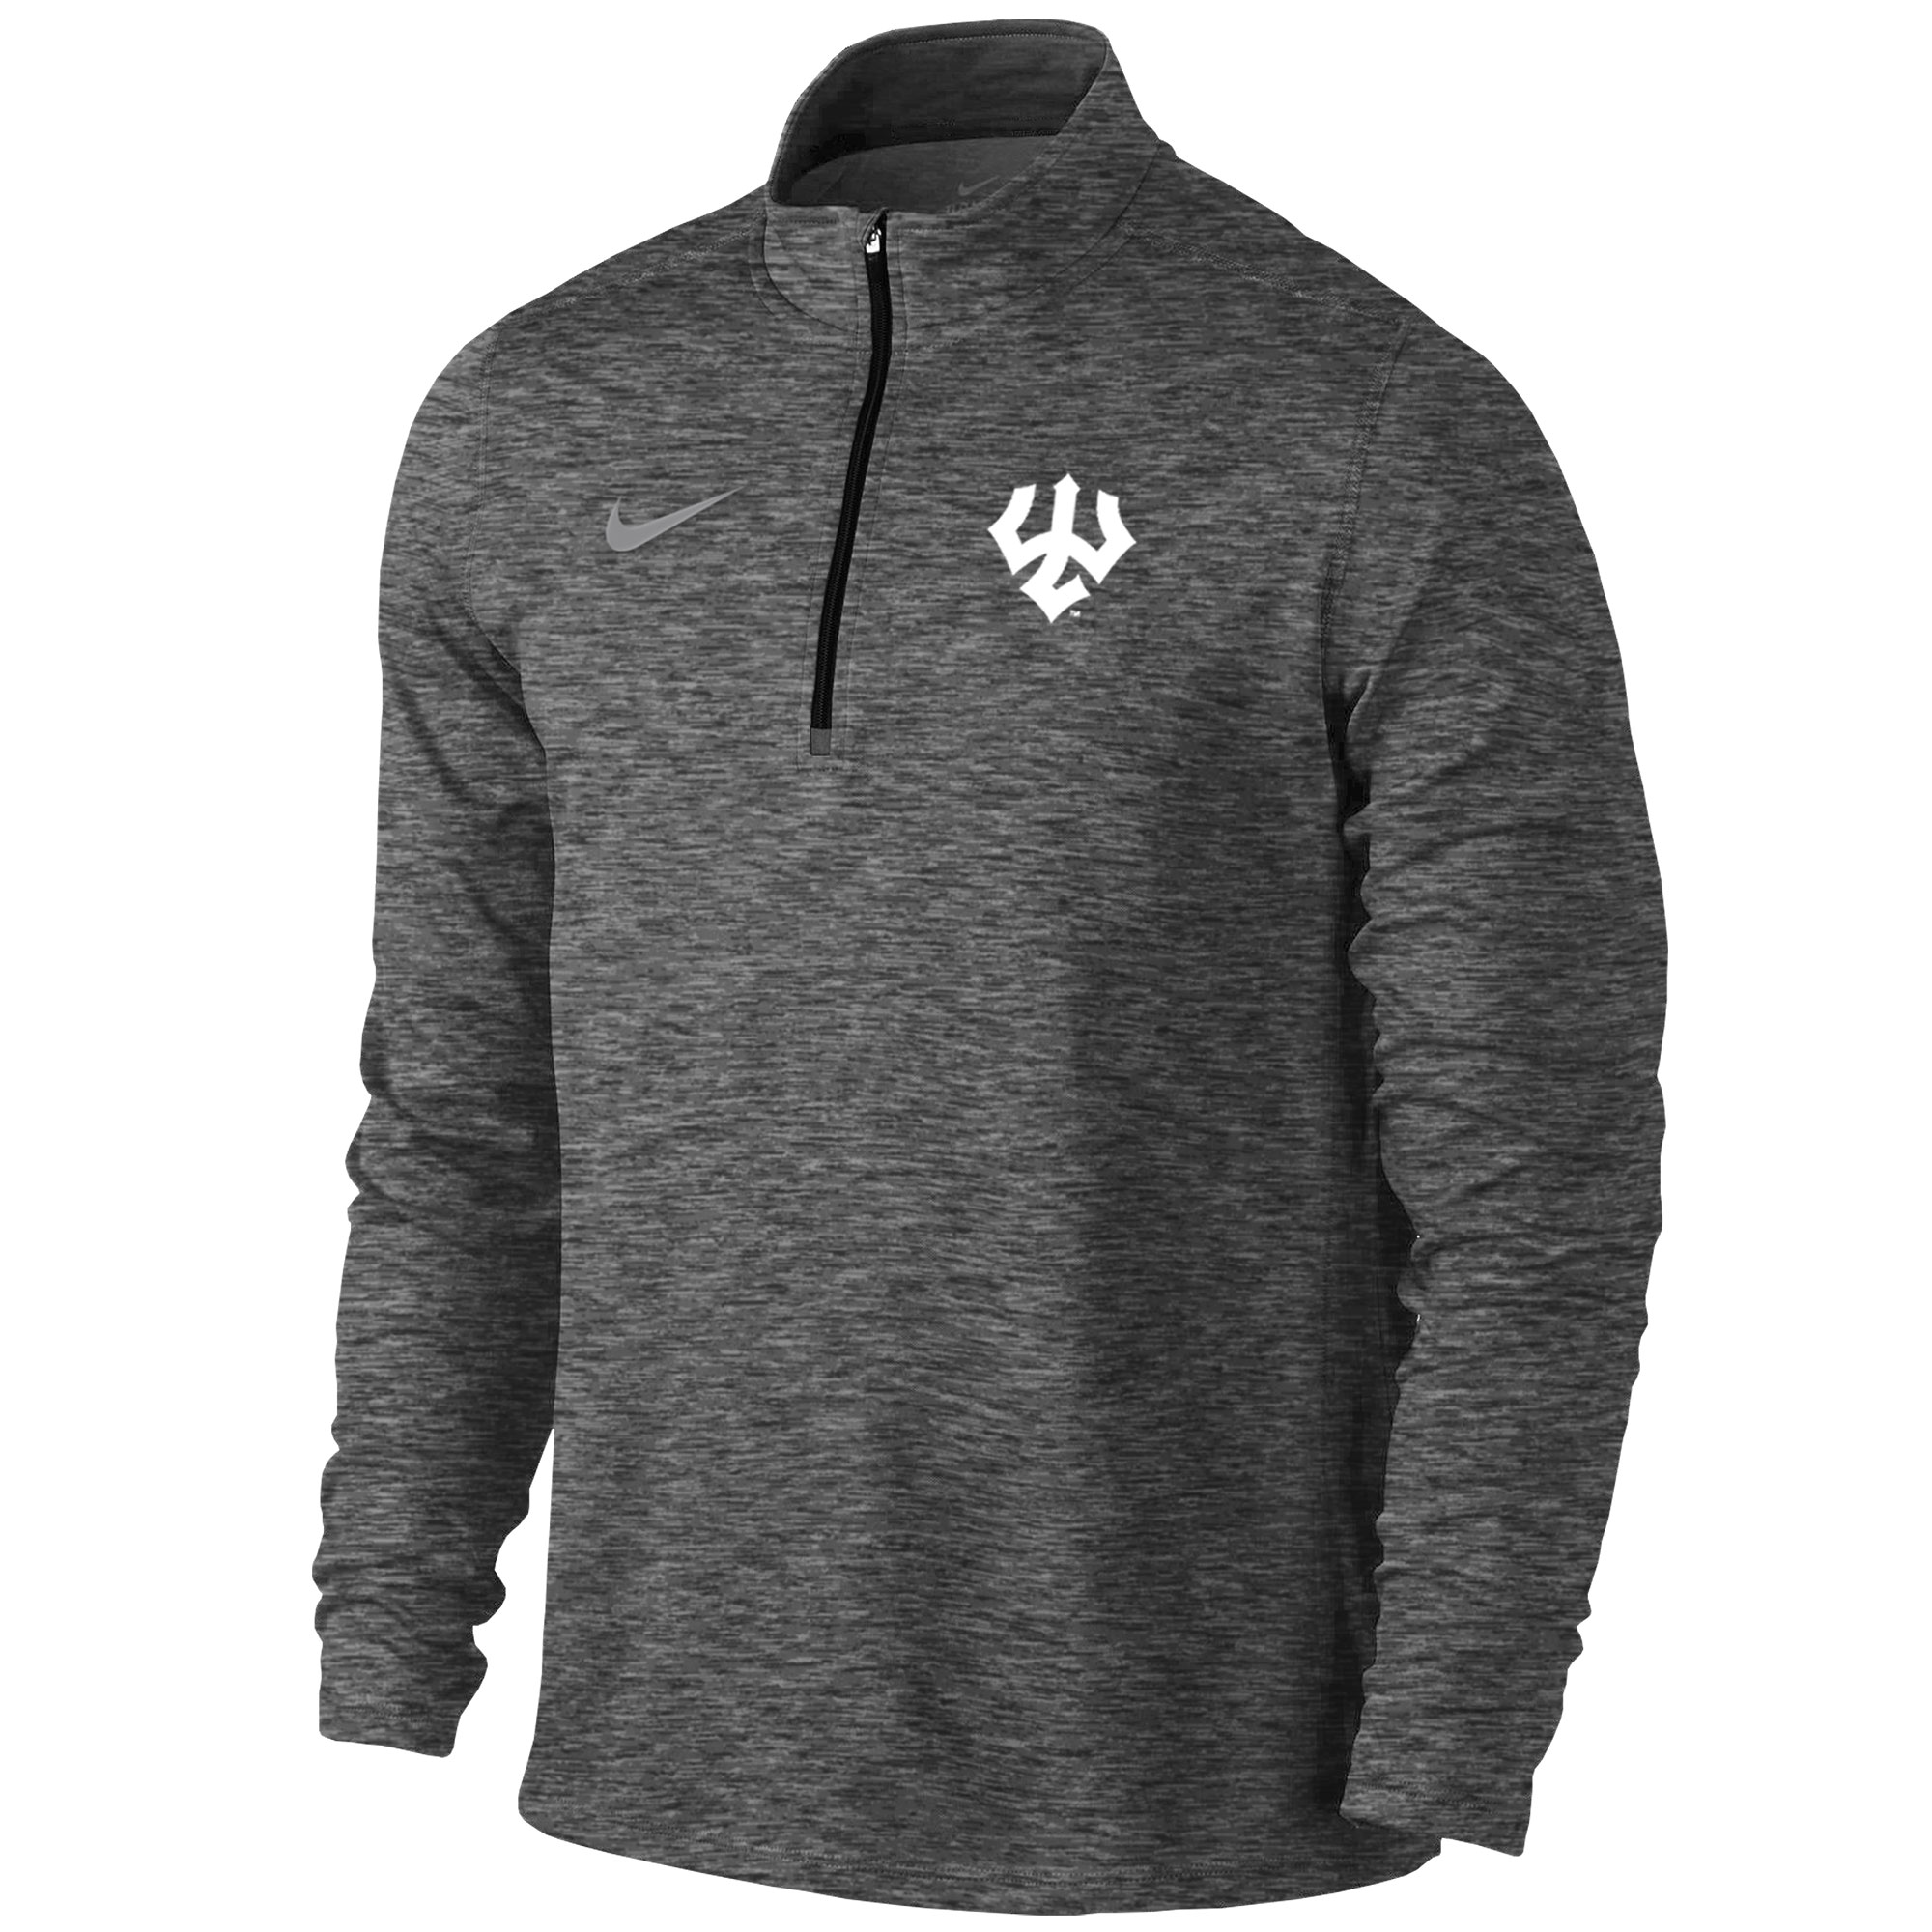 Nike Men's Element Quarter-Zip, Anthracite